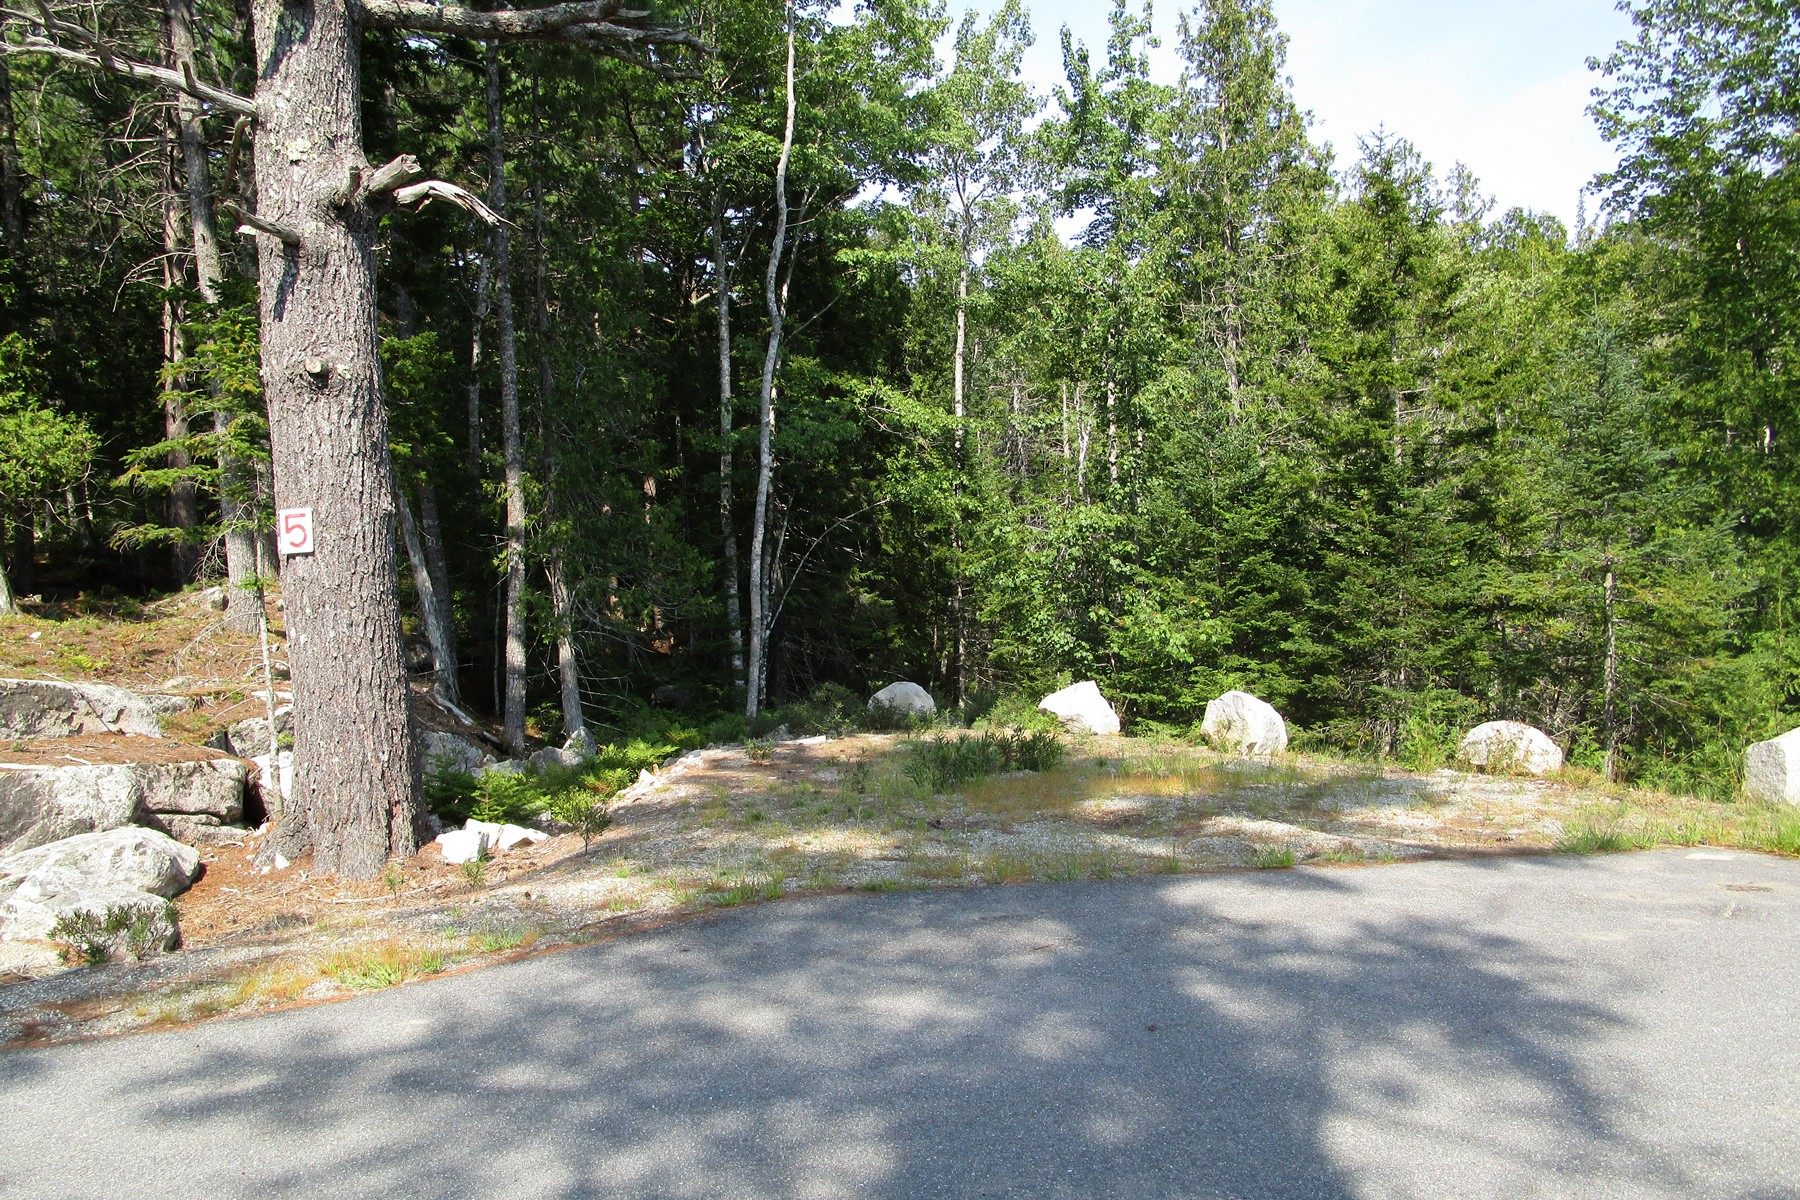 Terreno per Vendita alle ore Echo Woods Road Lot 5 Lot 5 Echo Woods Road Mount Desert, Maine, 04660 Stati Uniti